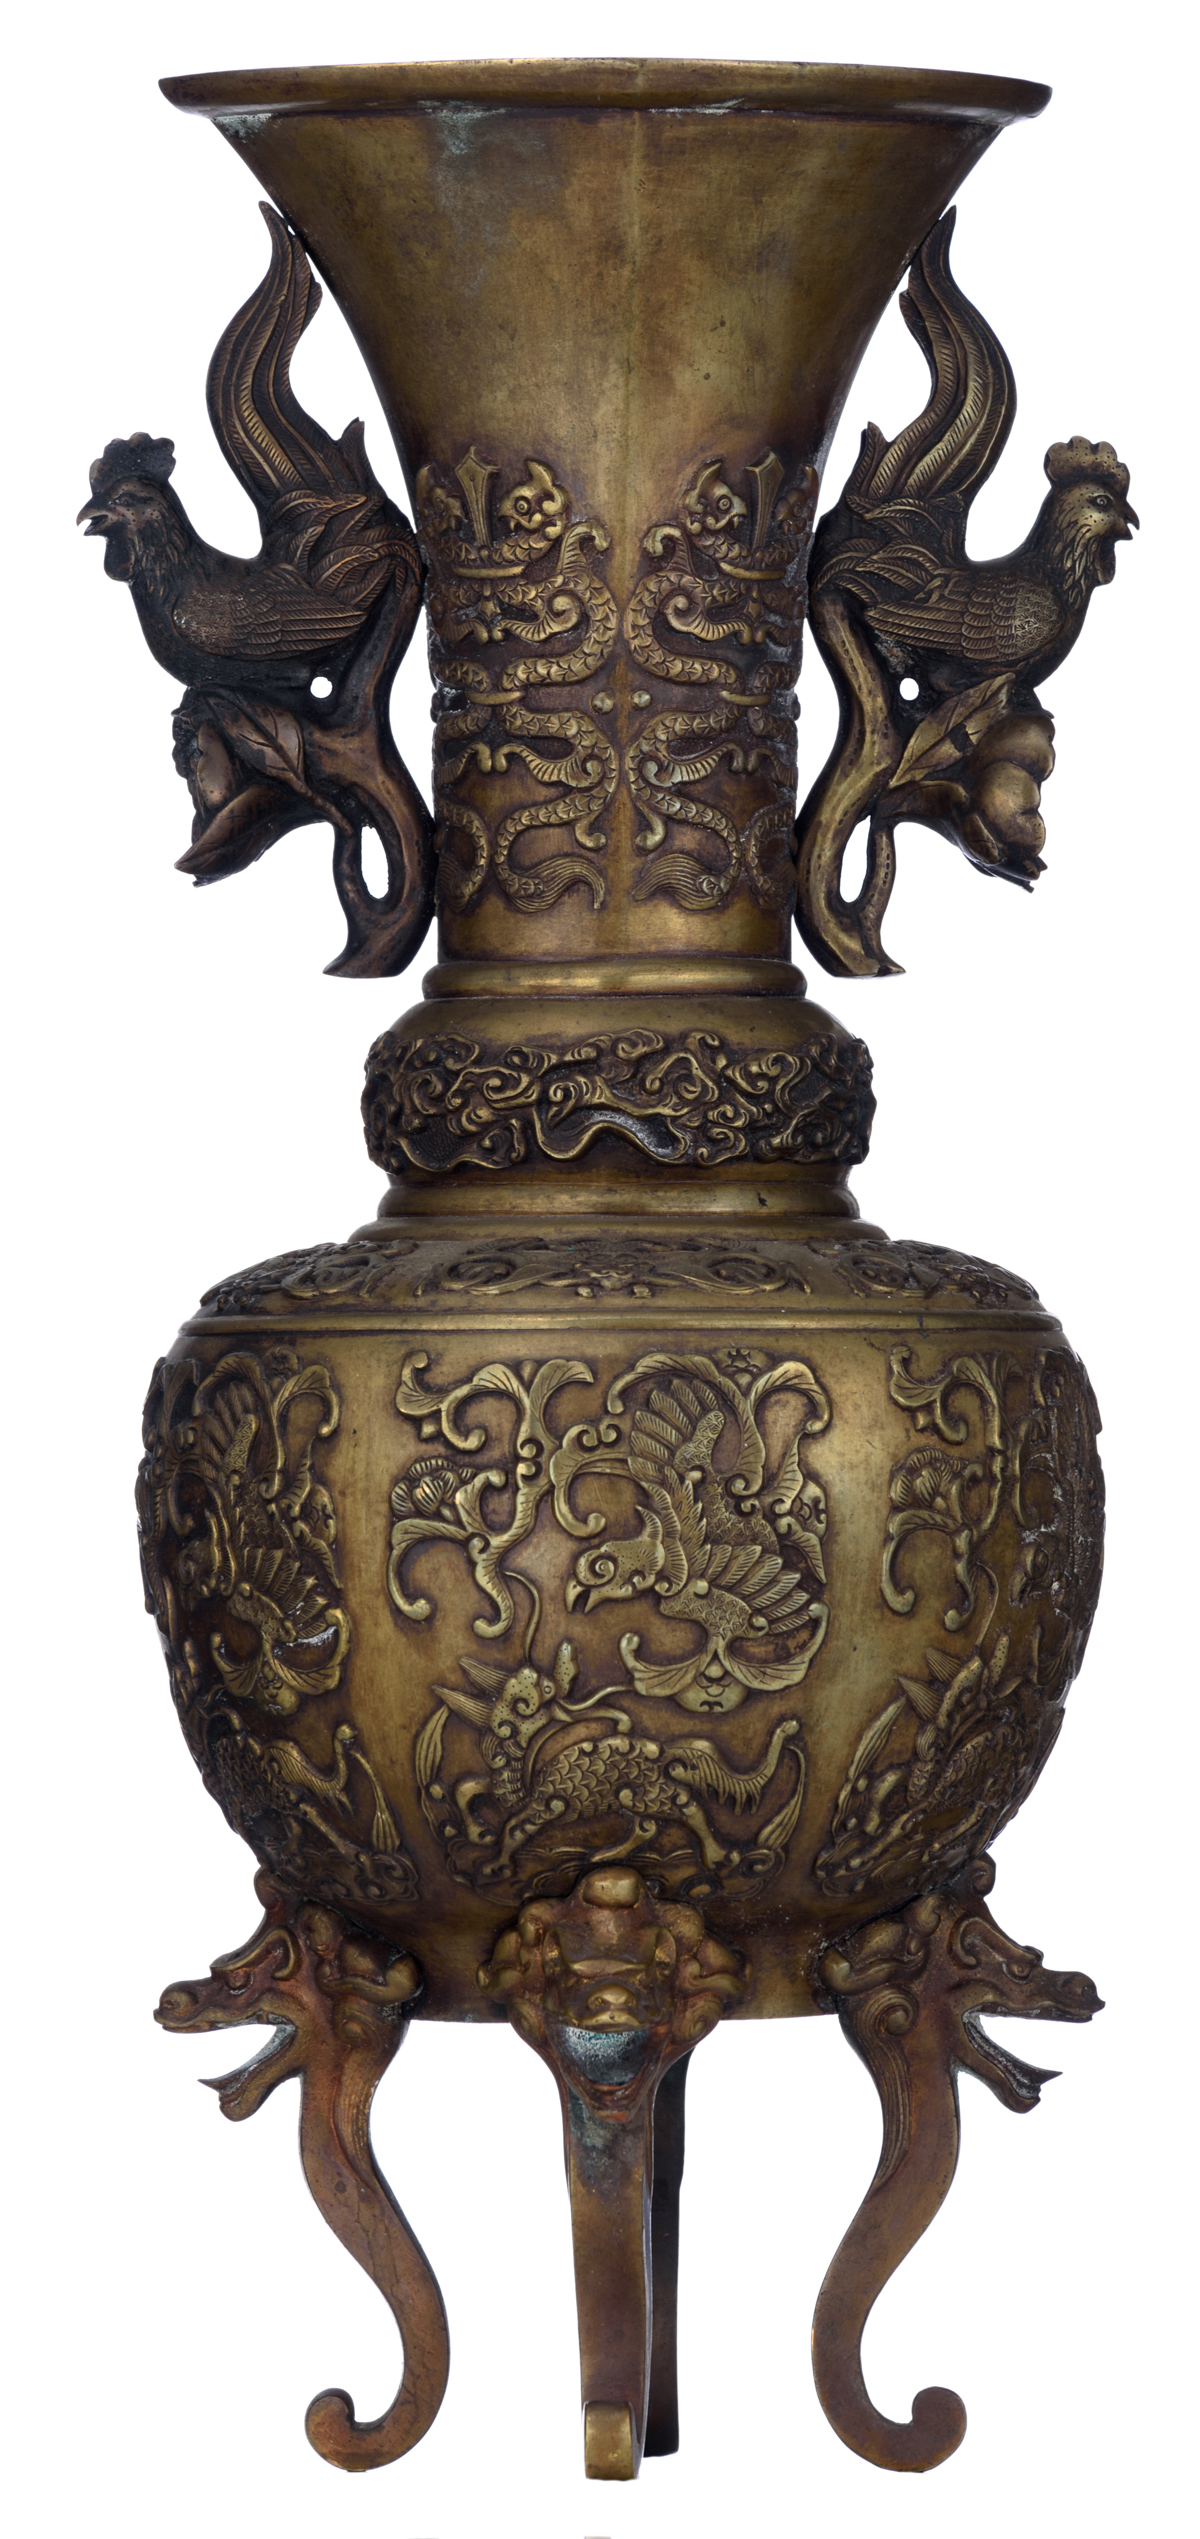 Lot 7 - A Chinese archaic bronze vase, relief decorated with mythical animals, Qing dynasty, H 41,5 cm